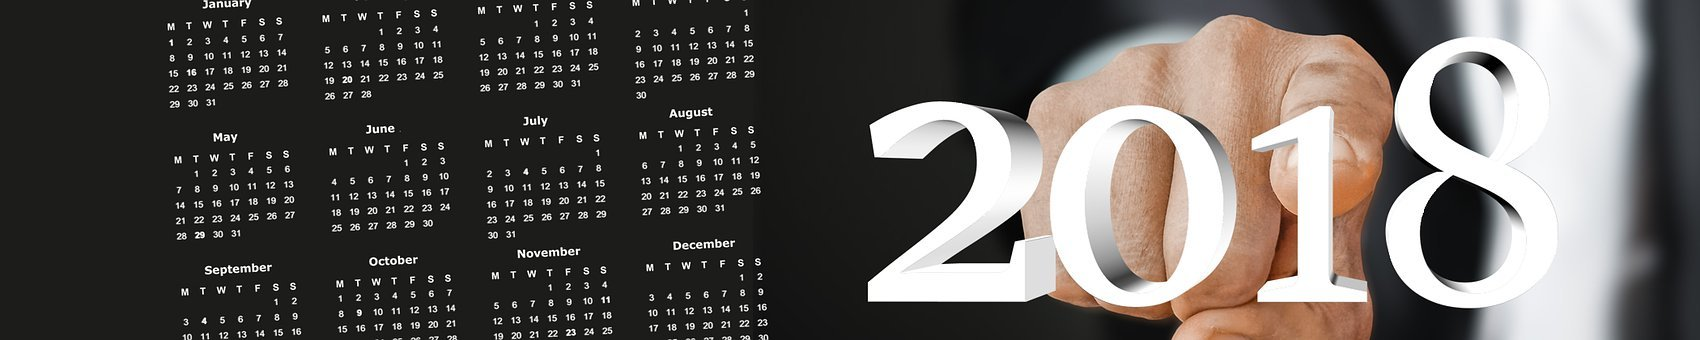 Calendar, Photoshop, Levels, New Year's Day